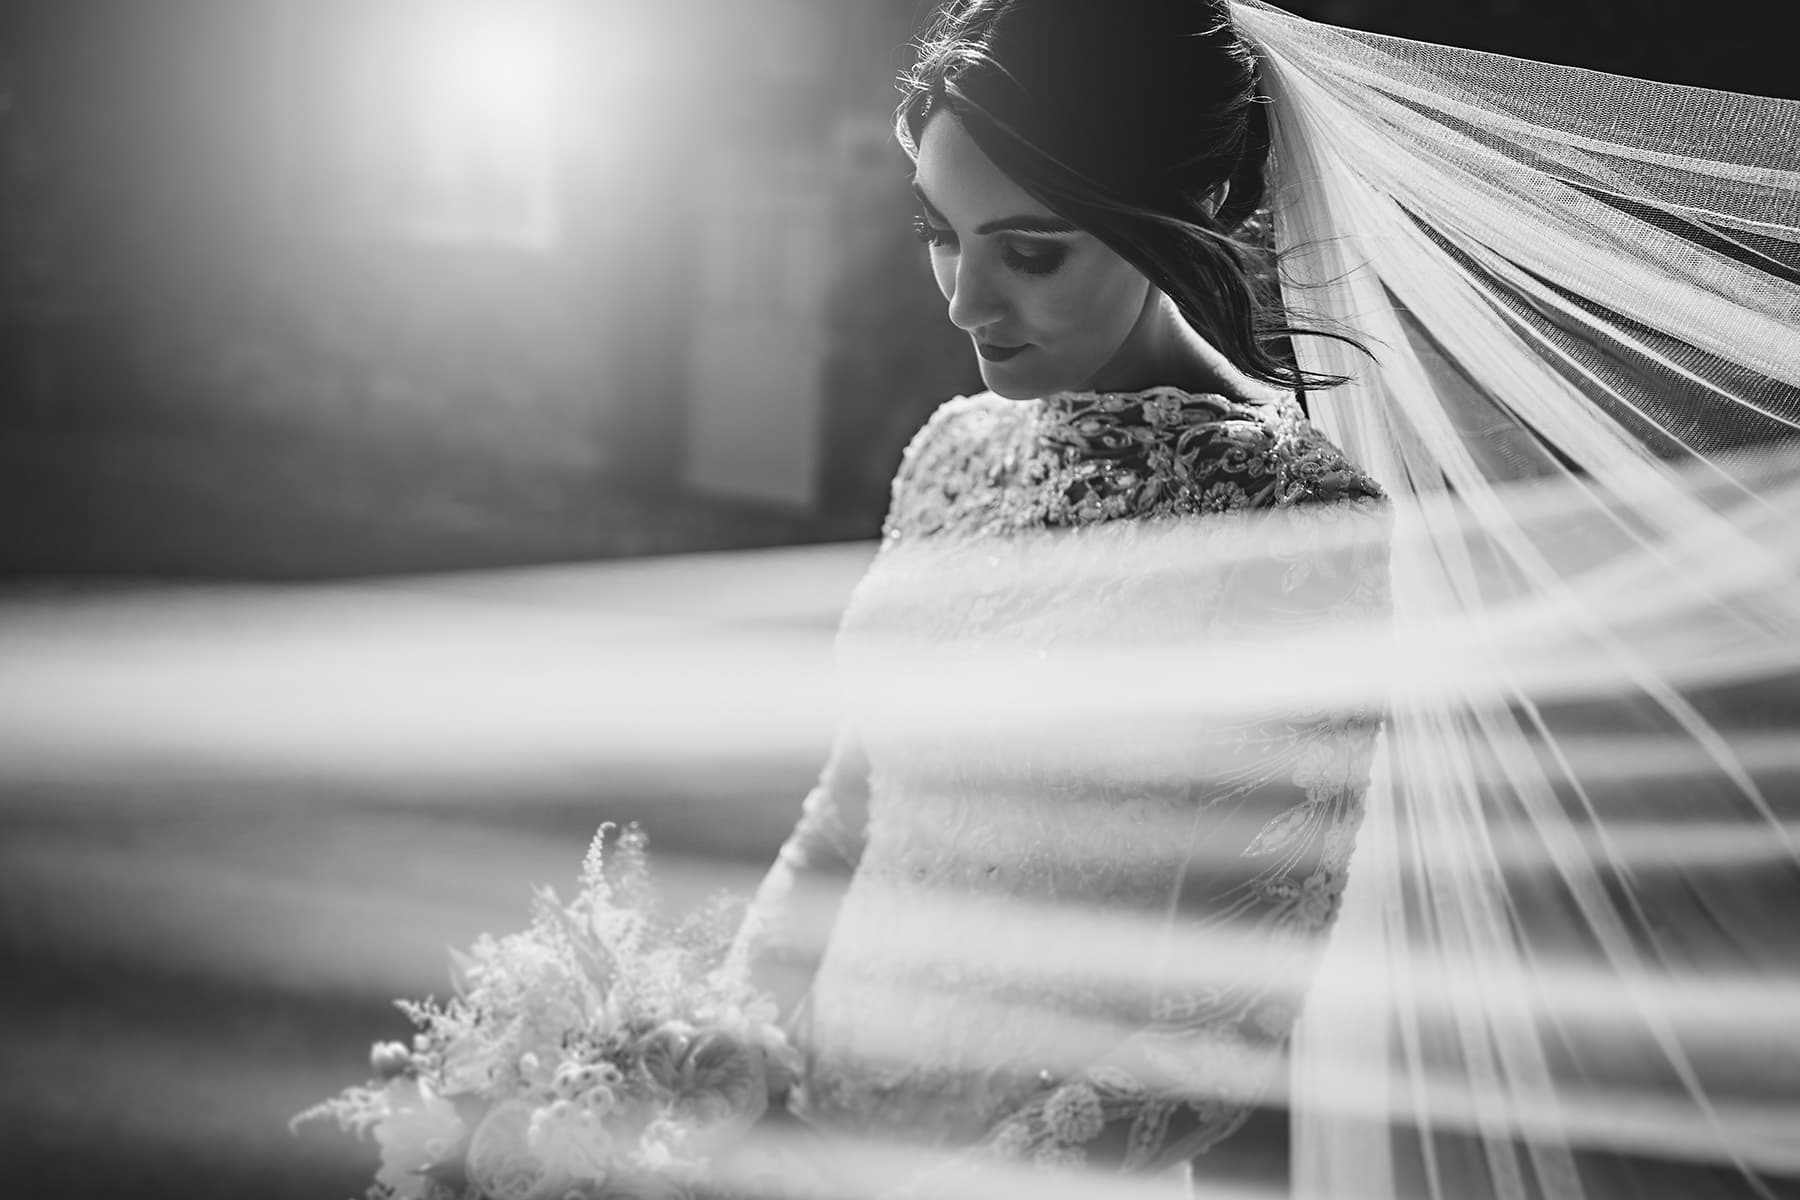 The bride at Dorfold Hall with her veil blowing in the wind